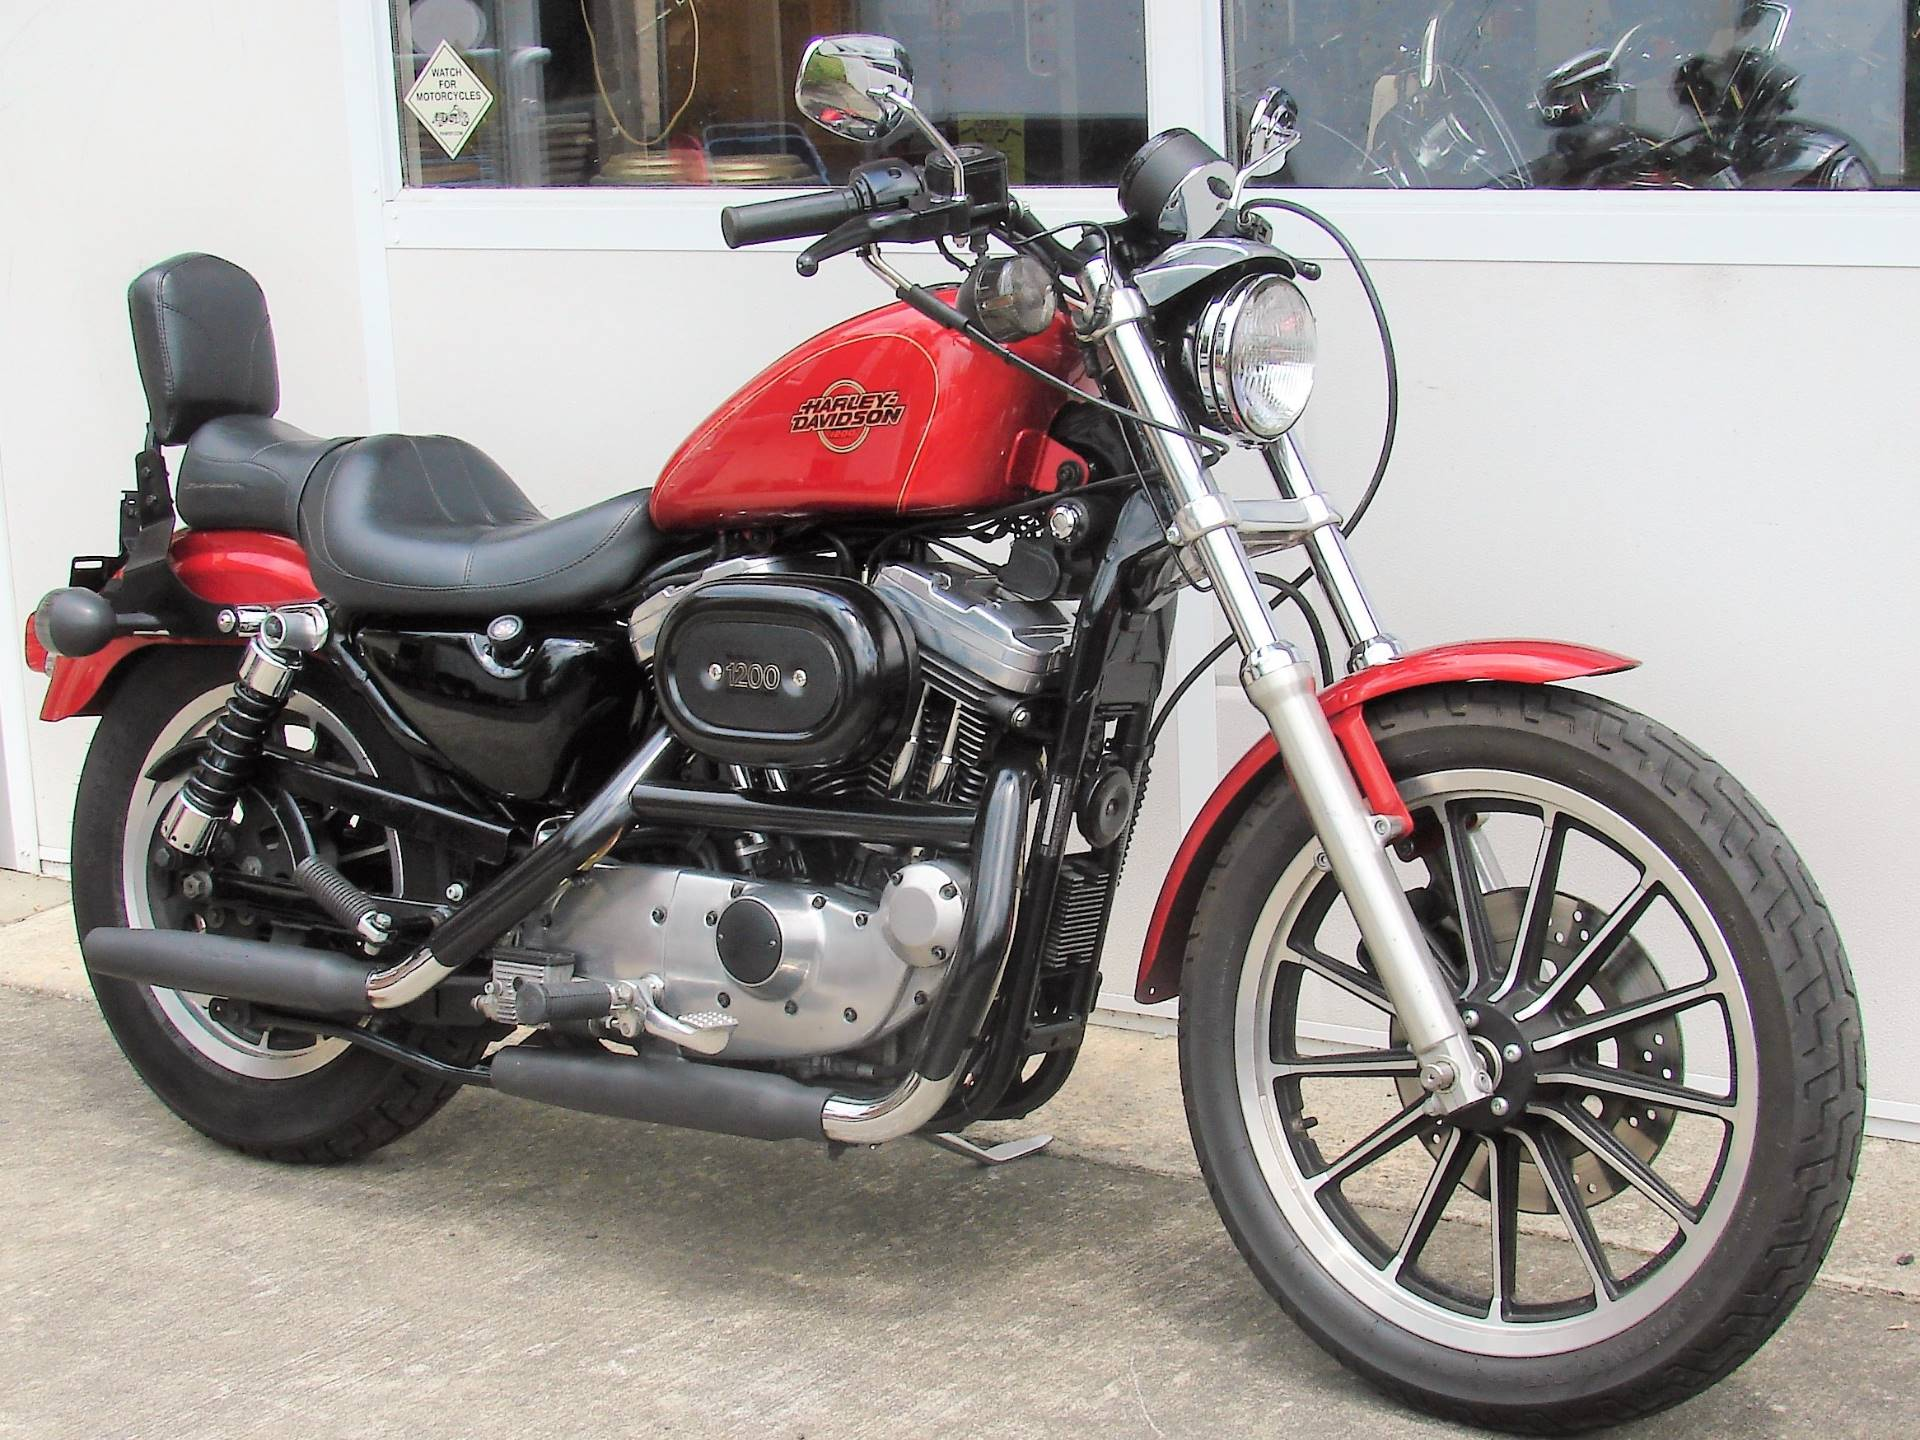 1996 Harley-Davidson XL 1200 Sportster  (Runs Good!) in Williamstown, New Jersey - Photo 4